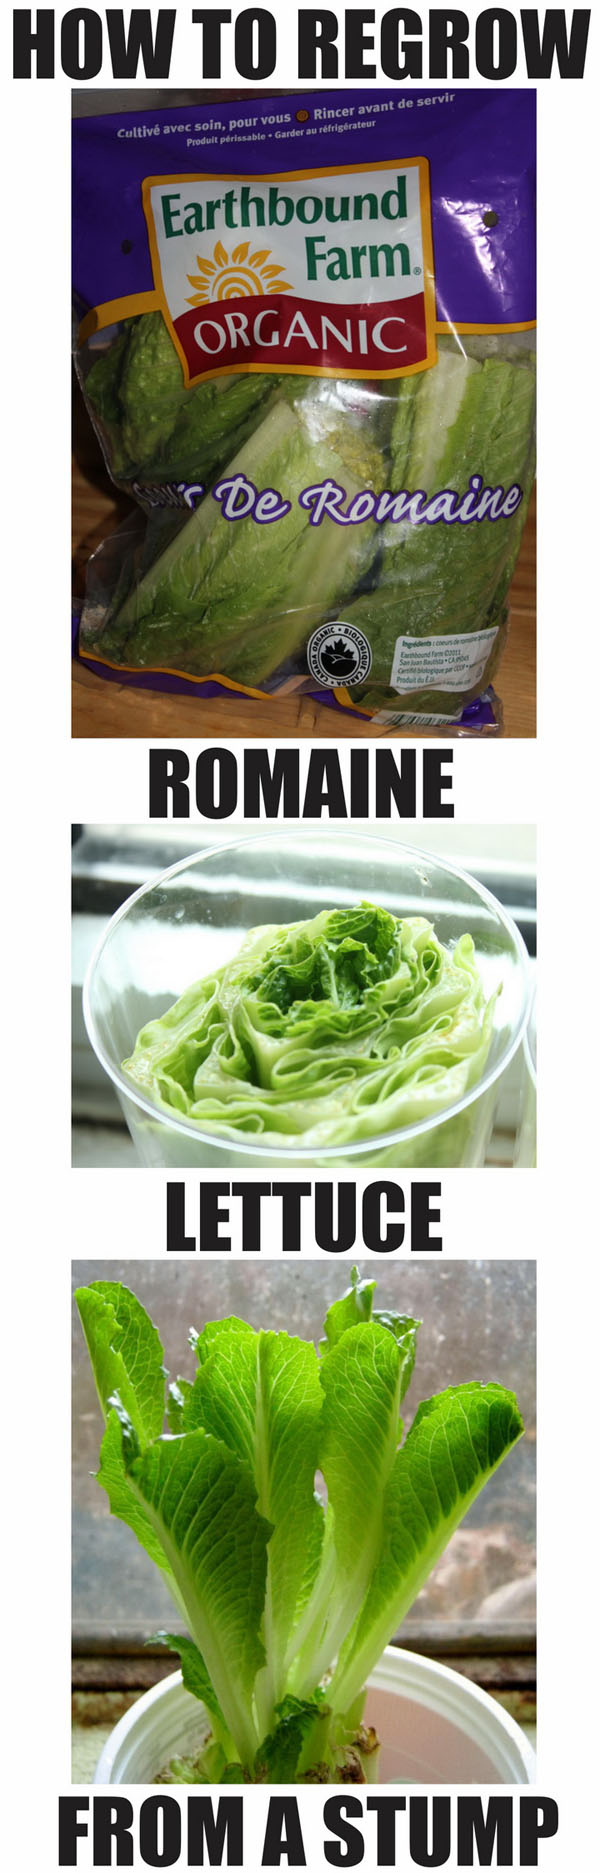 Buy romaine once, eat romaine forever.